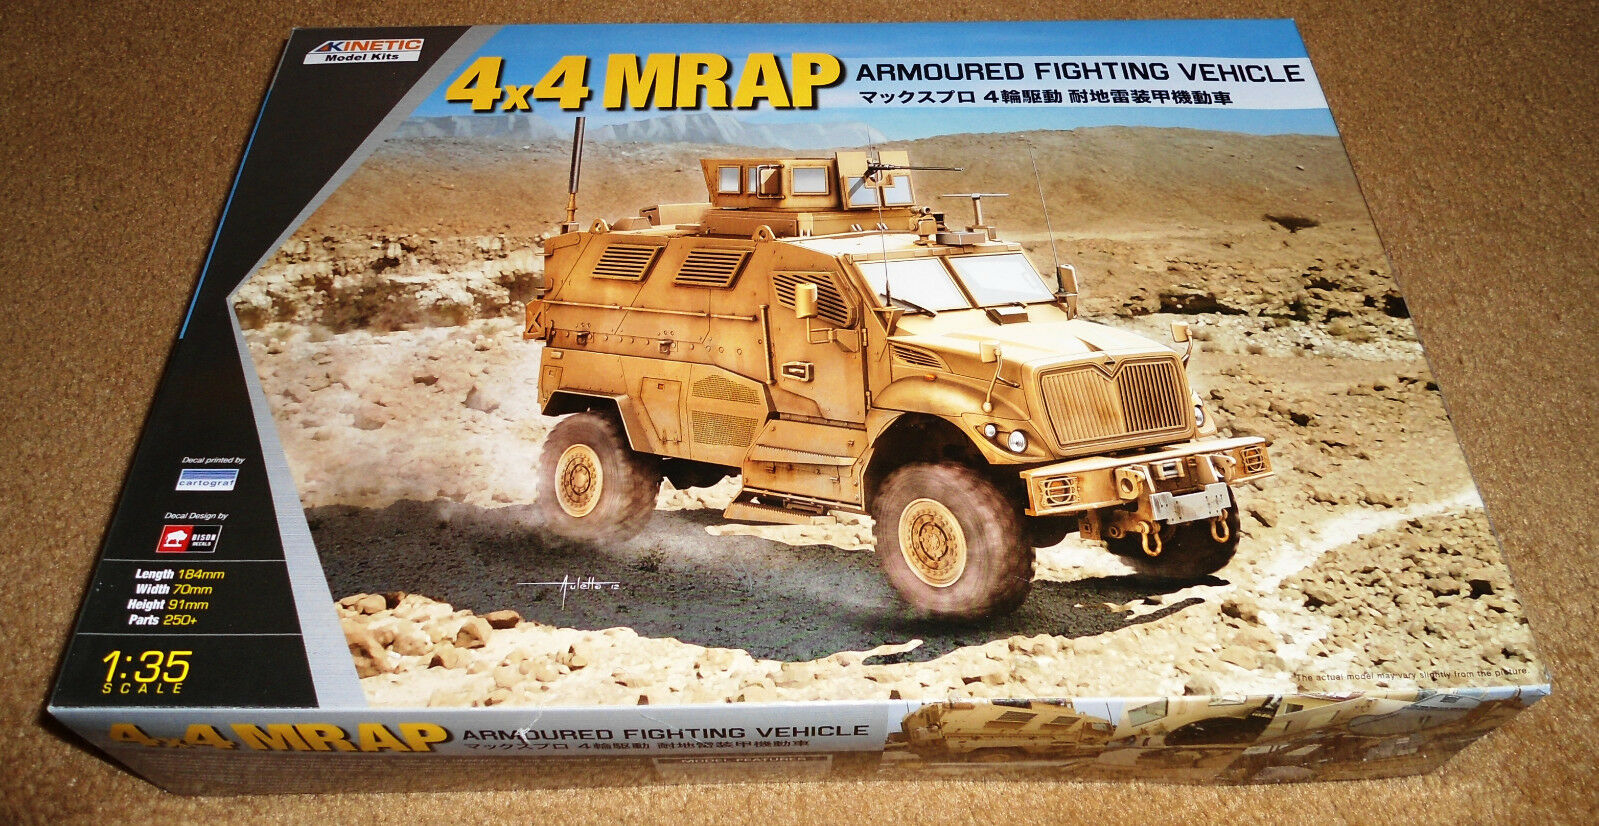 Kinetic 1 35 4X4 MRAP Armored Fighting Vehicle